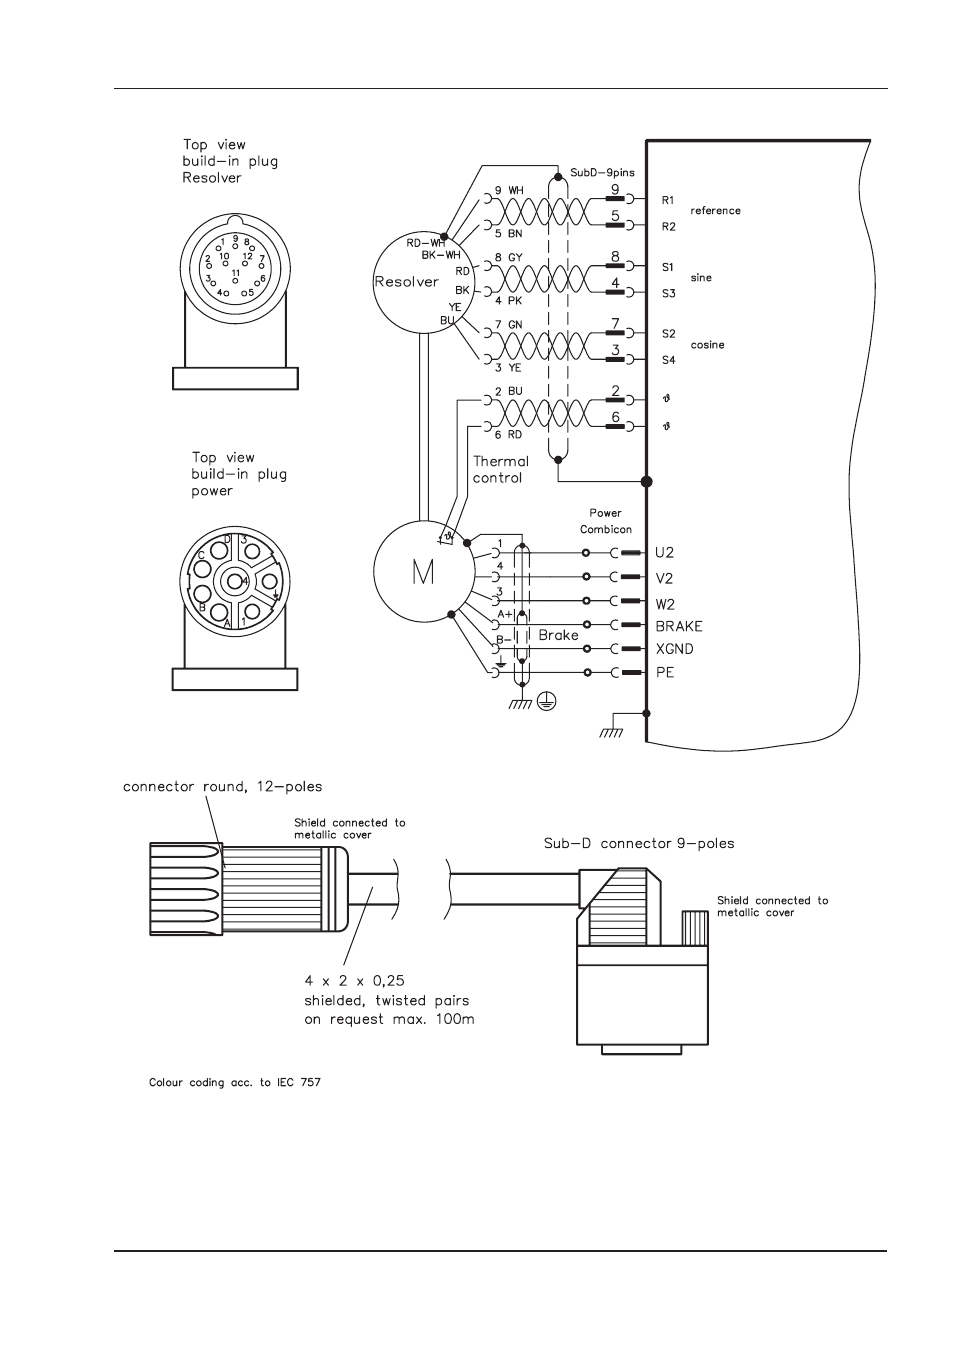 Iii.4 wiring diagram am227 with resolver, Wiring diagram